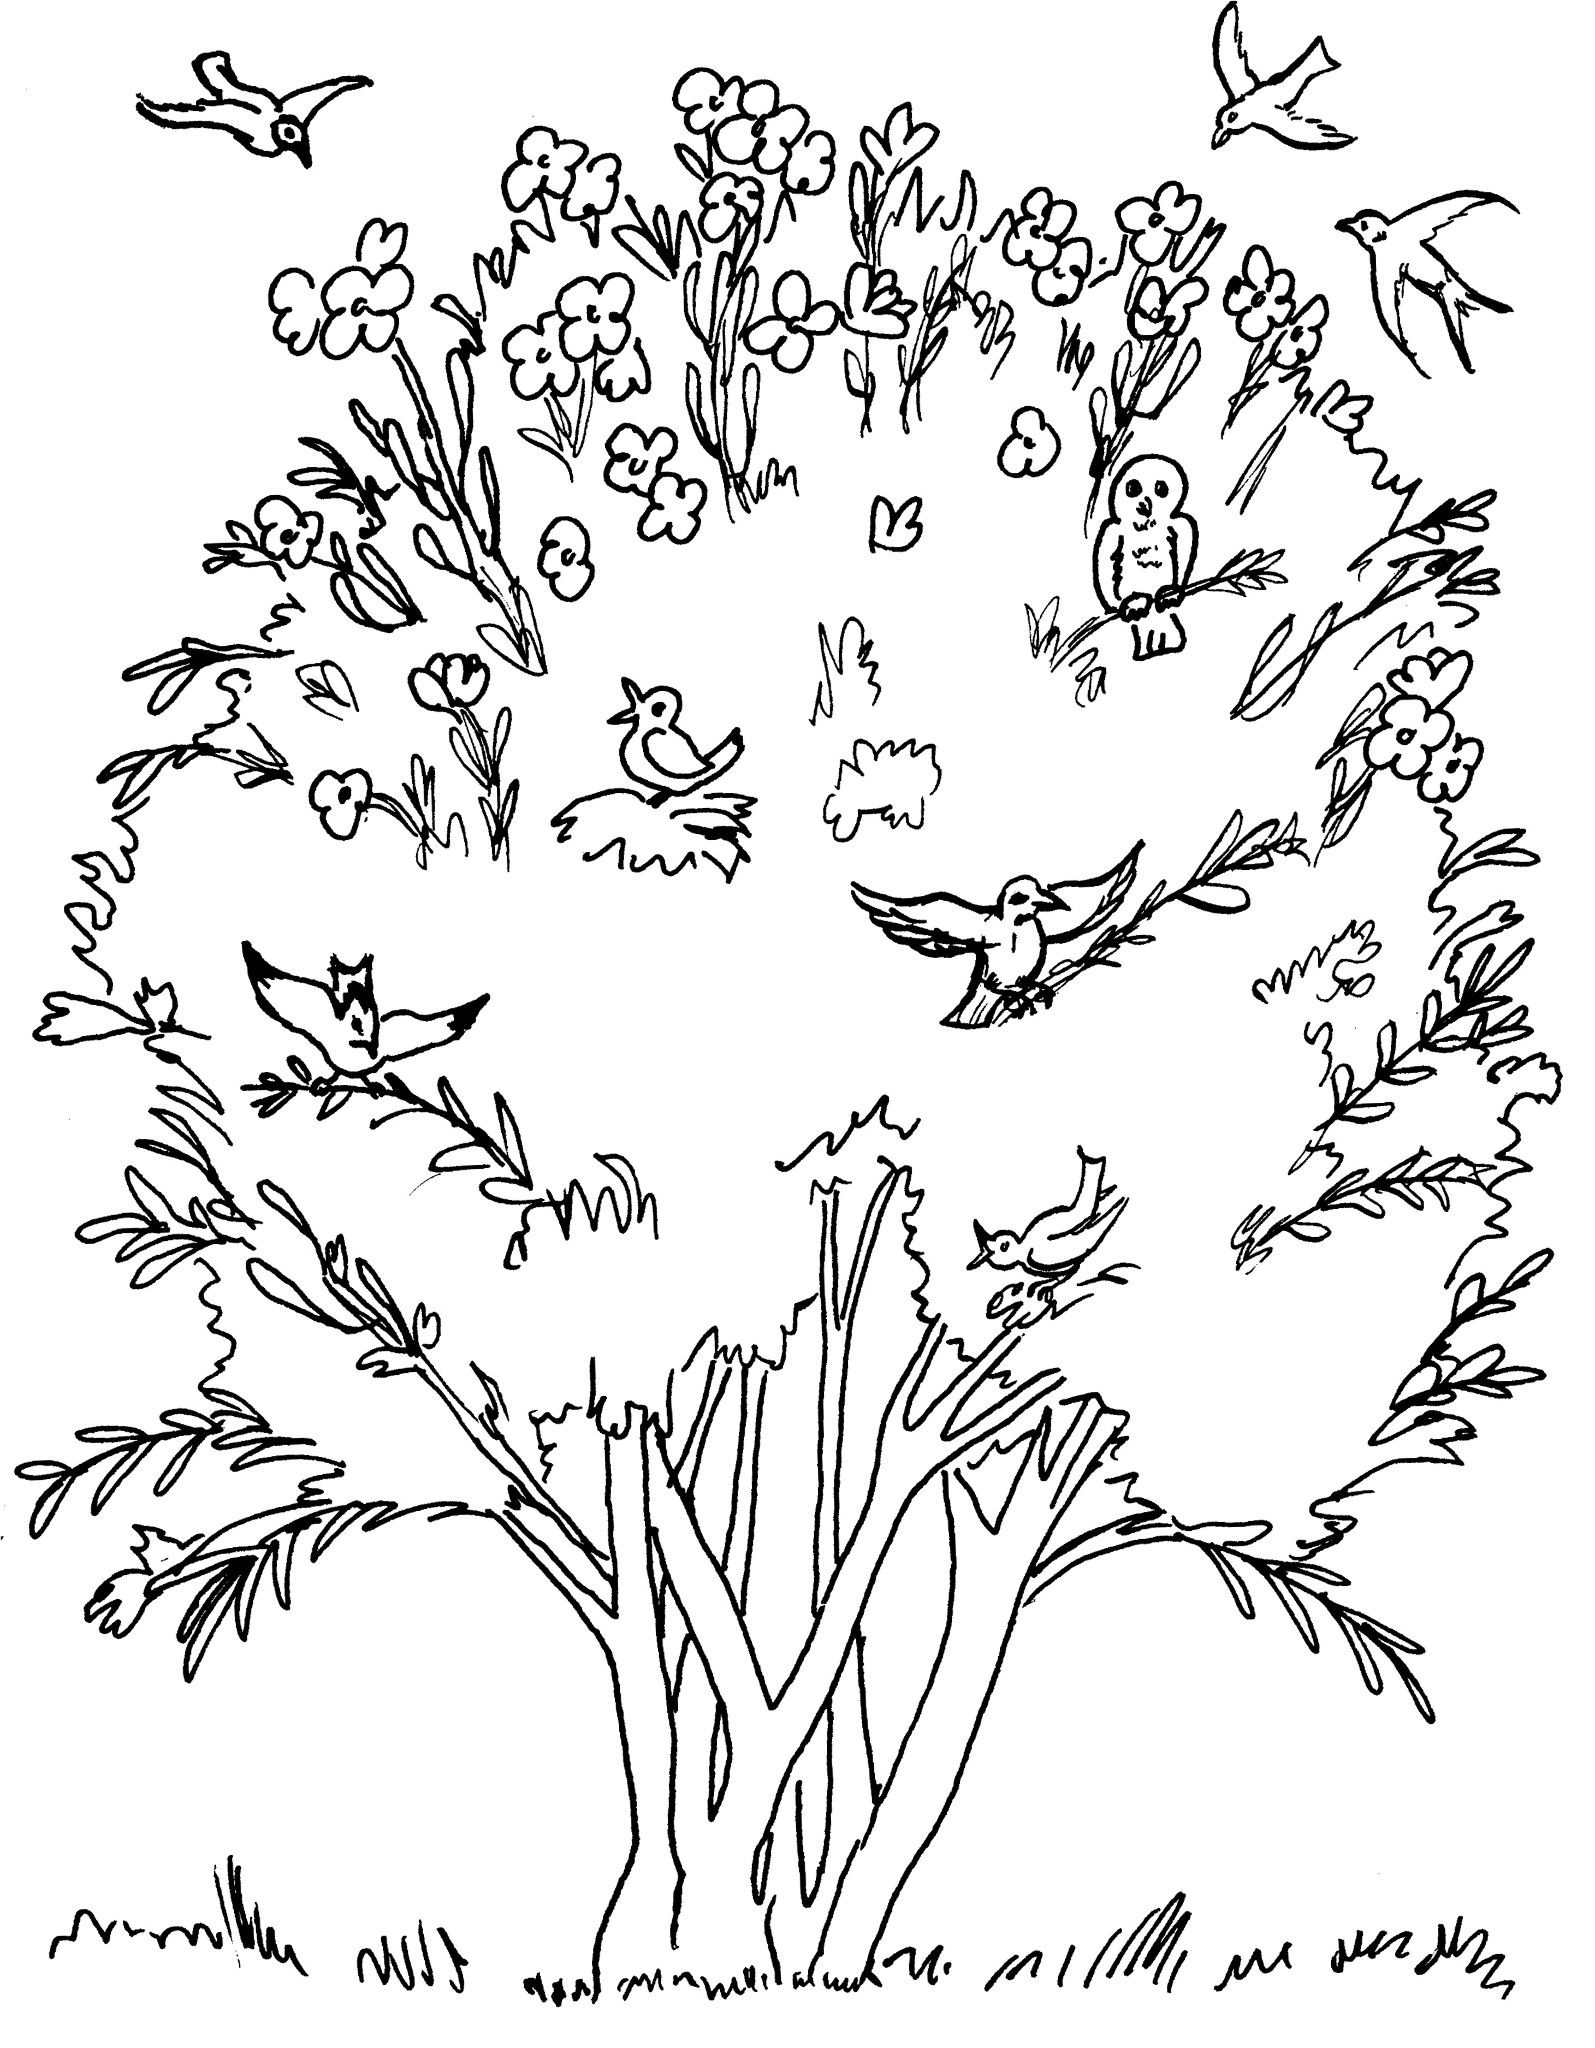 Parable Of The Mustard Seed Coloring Pages Mustard Seed Parable